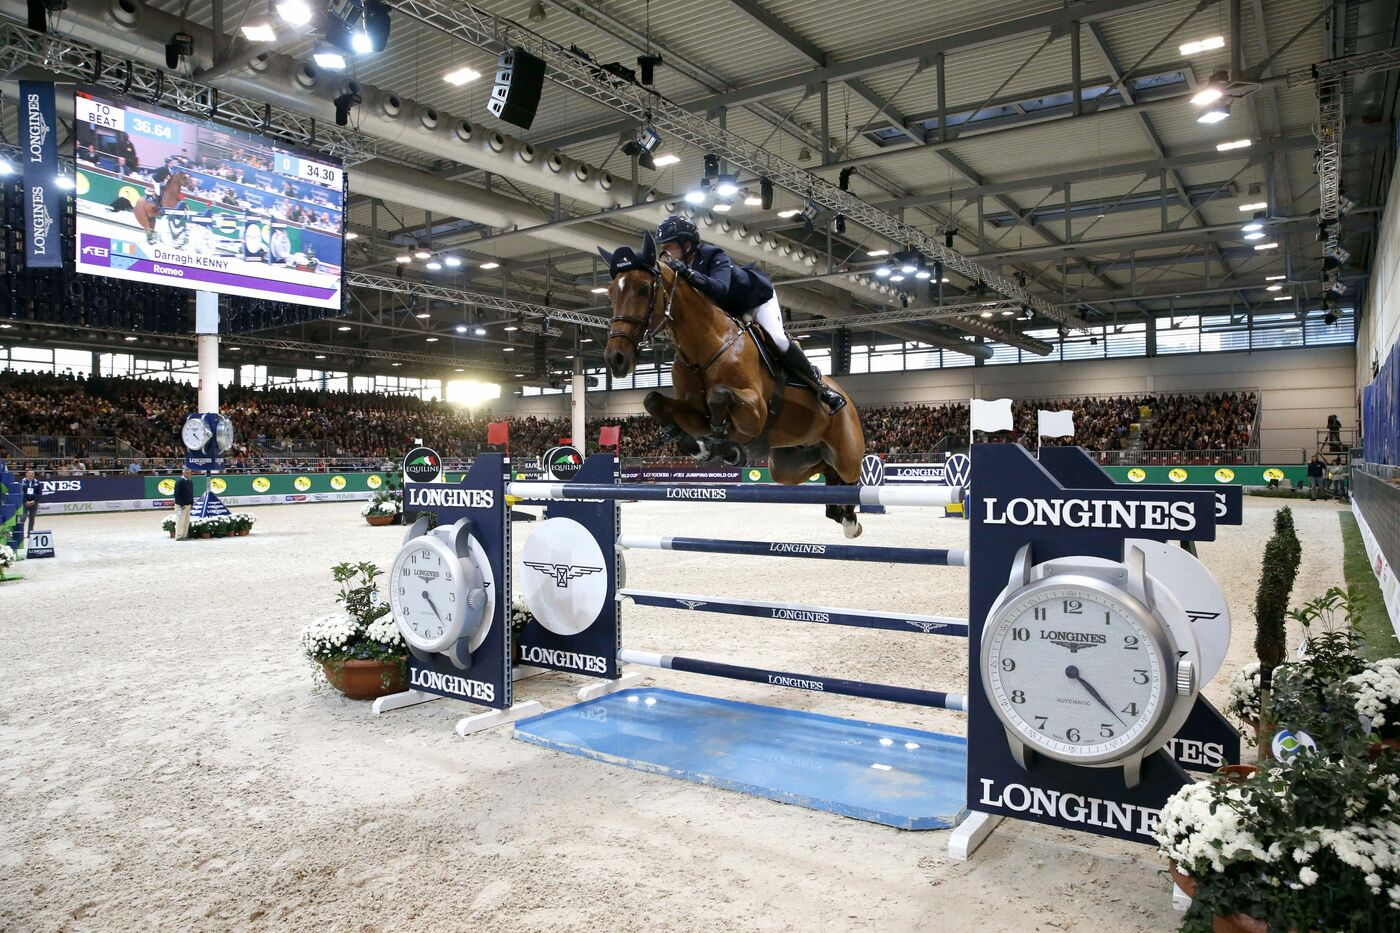 Longines Show Jumping Event: Scott Brash (GB) and Hello M'lady, convincing winners of the Longines FEI Jumping World Cup Verona  3